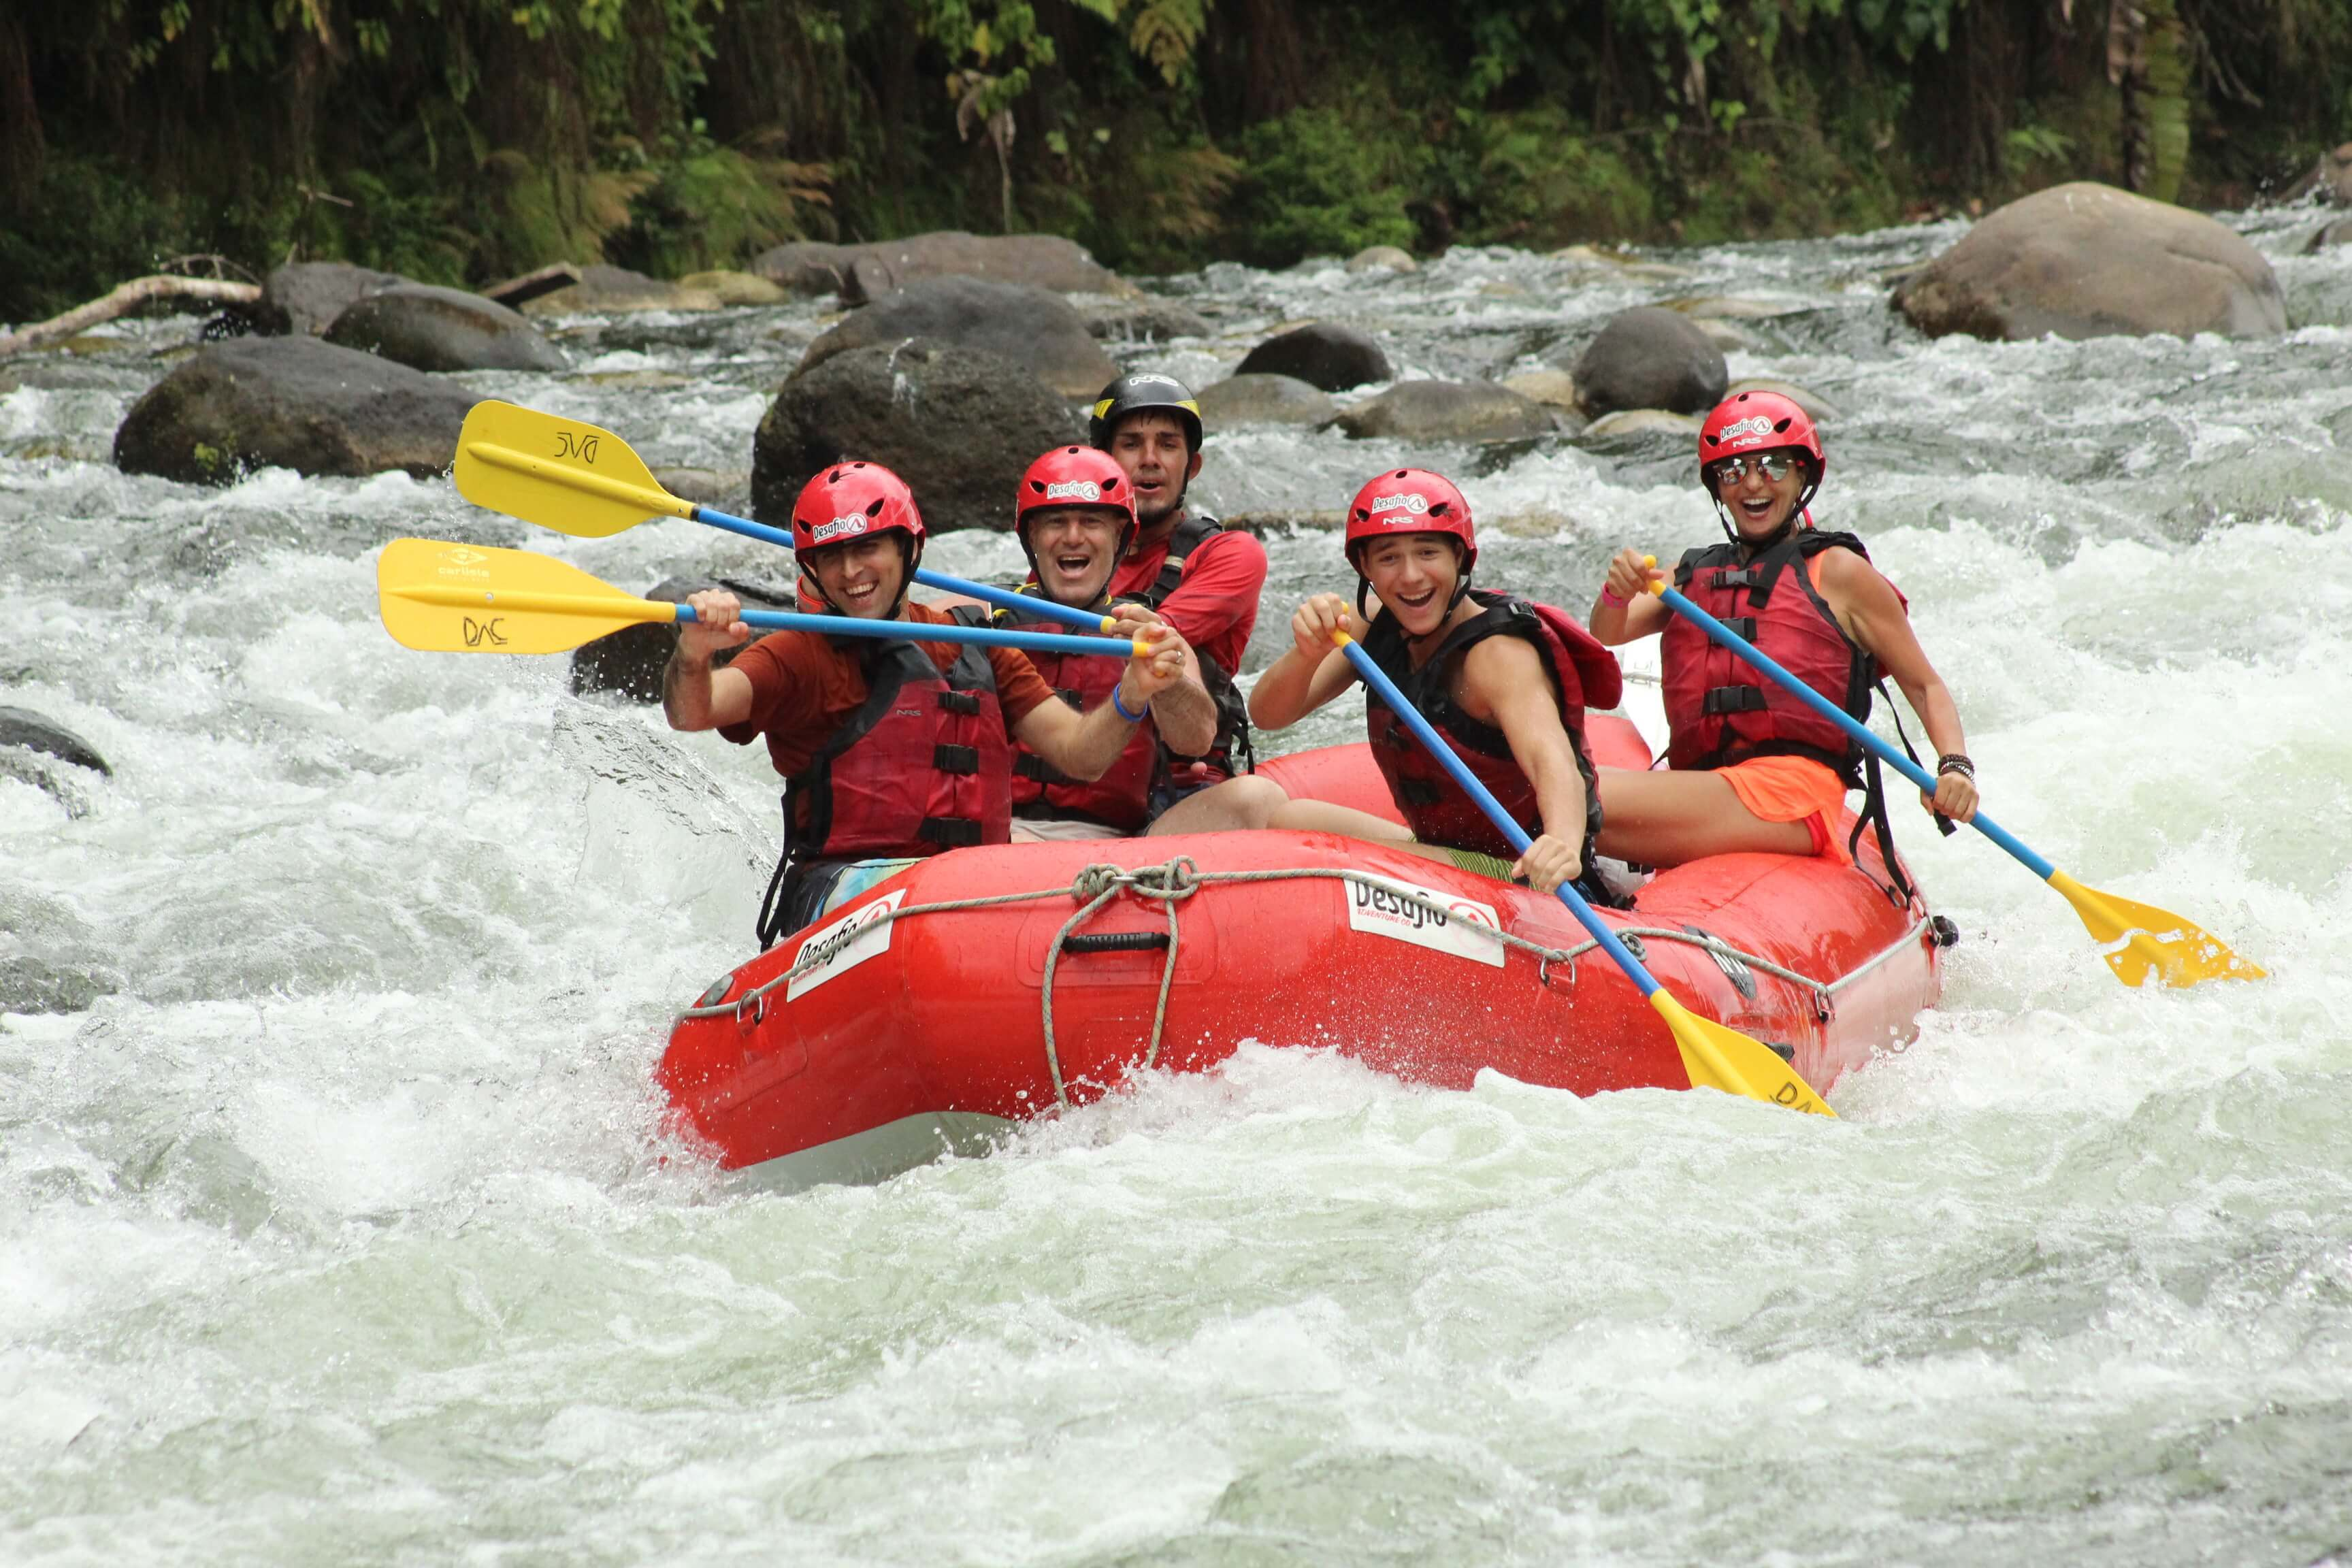 So much fun rafting on the Class 2 and 3